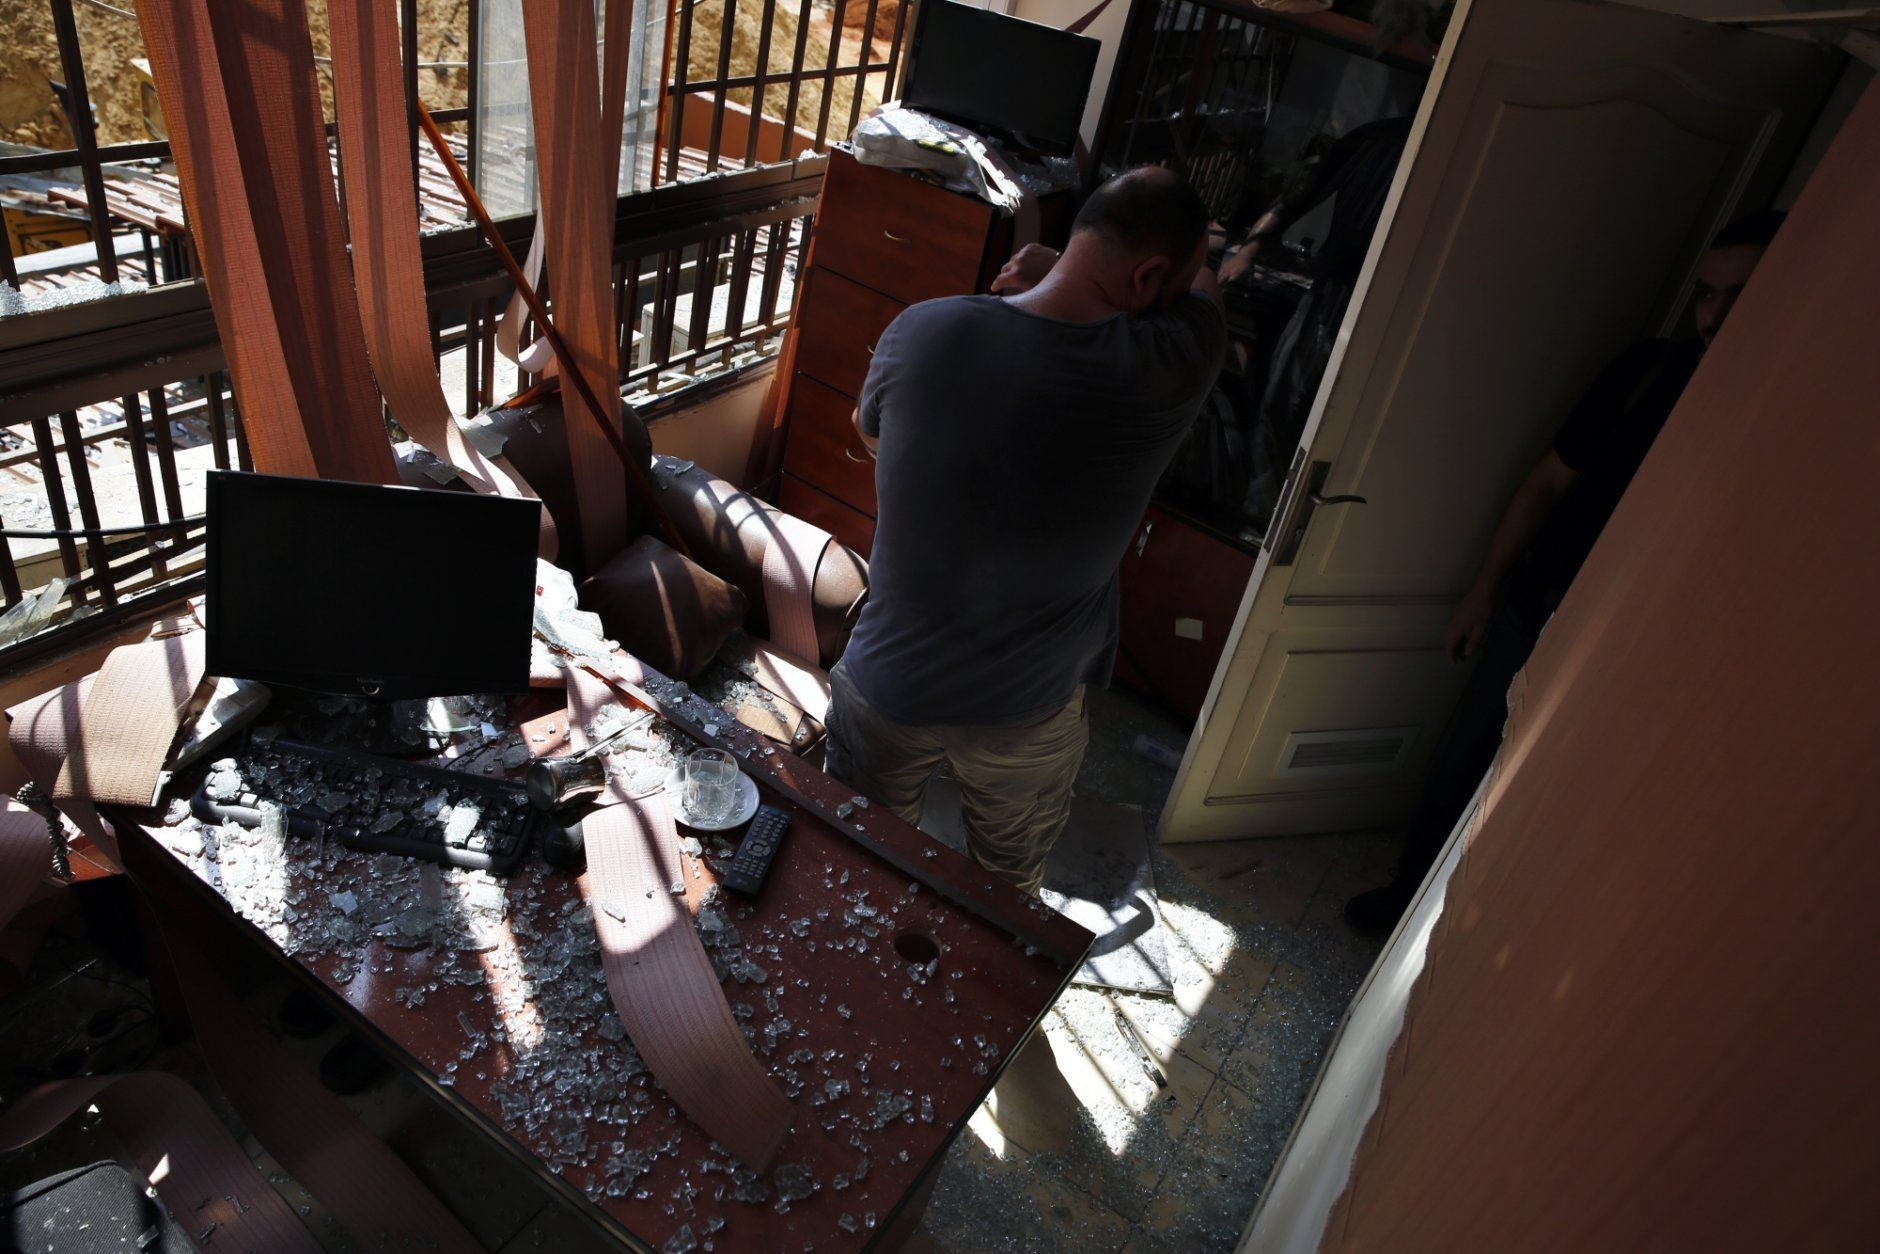 A man stands inside a damaged media office in a stronghold of the Lebanese Hezbollah group, in a southern suburb of Beirut, Lebanon, Sunday, Aug. 25, 2019. Two Israeli drones crashed in a Hezbollah stronghold in the Lebanese capital overnight without the militants firing on them, a spokesman for the group said Sunday, saying the first fell on the roof of a building housing Hezbollah's media office while the second landed in a plot behind it. (AP Photo/Bilal Hussein)